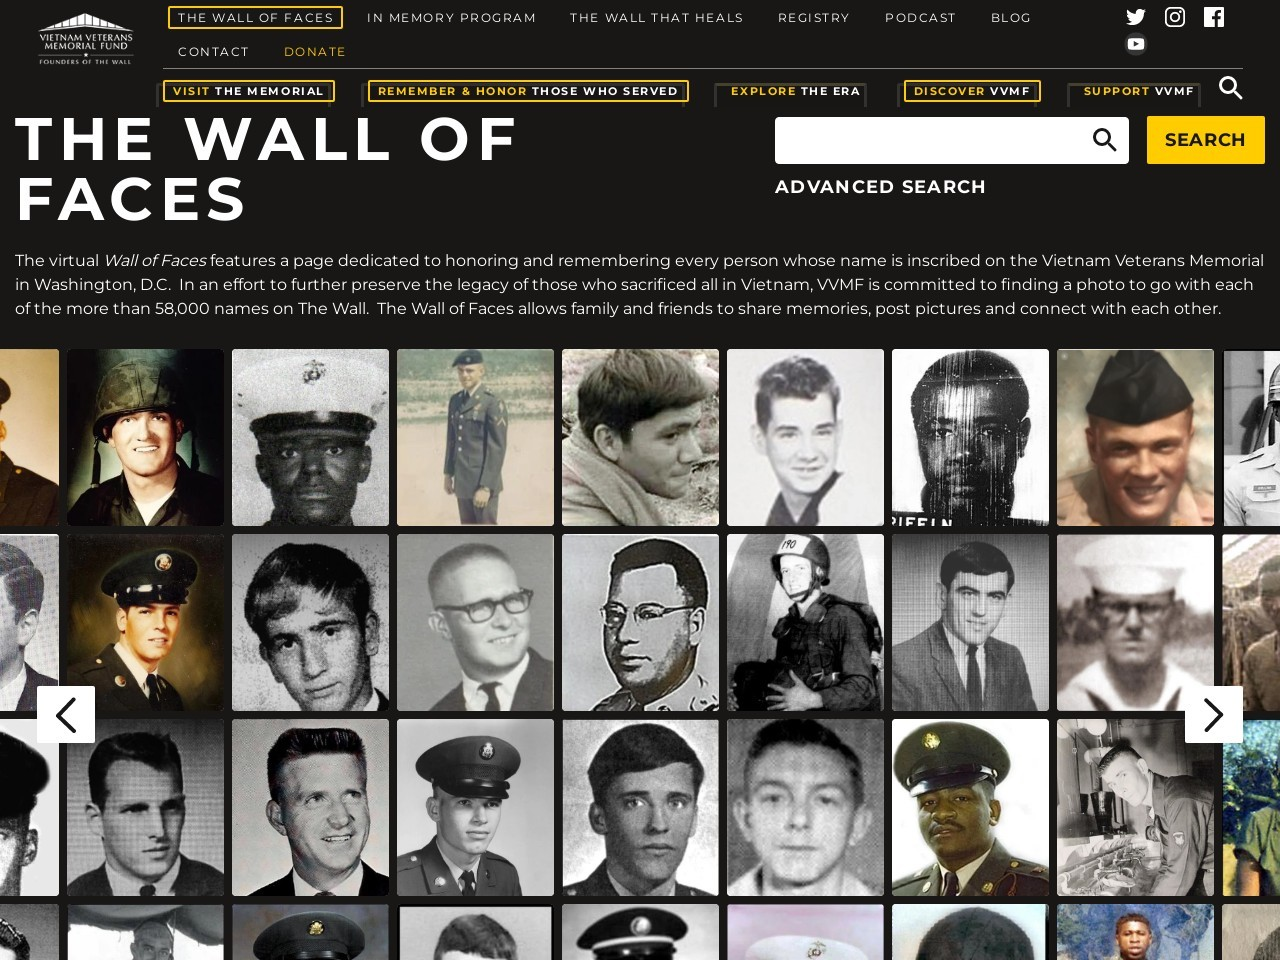 The wall images